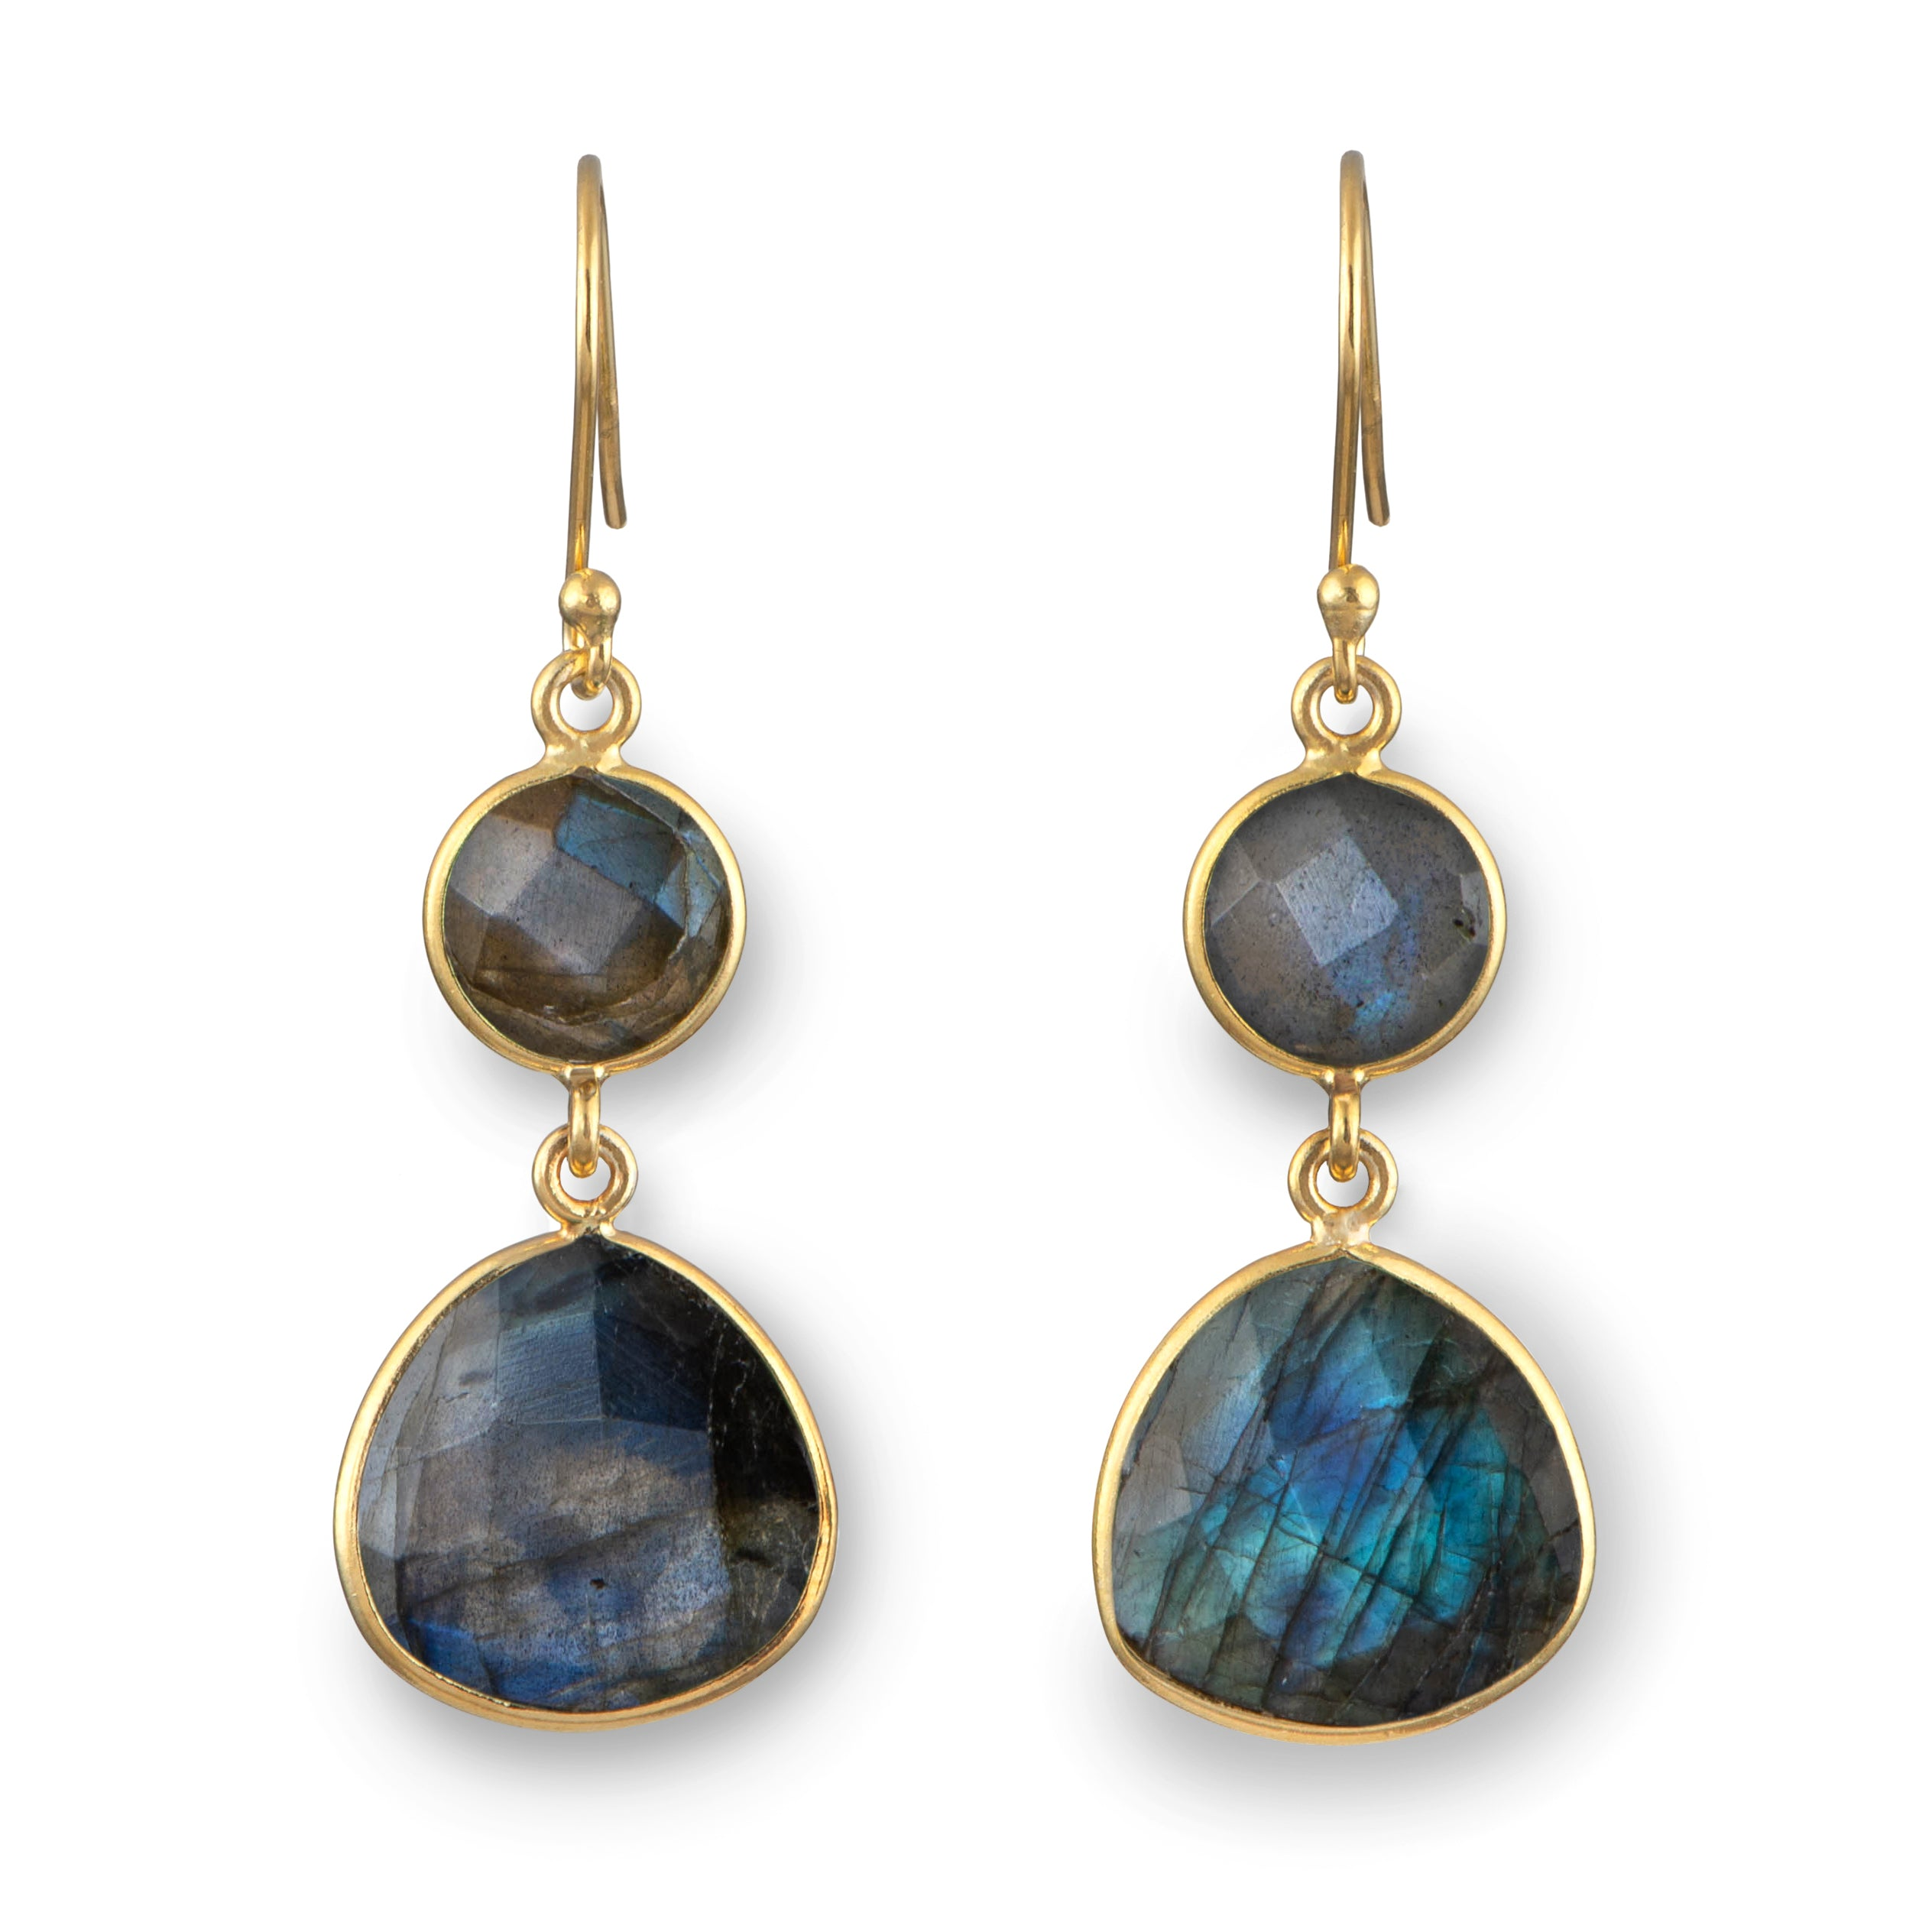 Labradorite Semiprecious Gemstone Earrings in Gold Plated Sterling Silver - Triangular